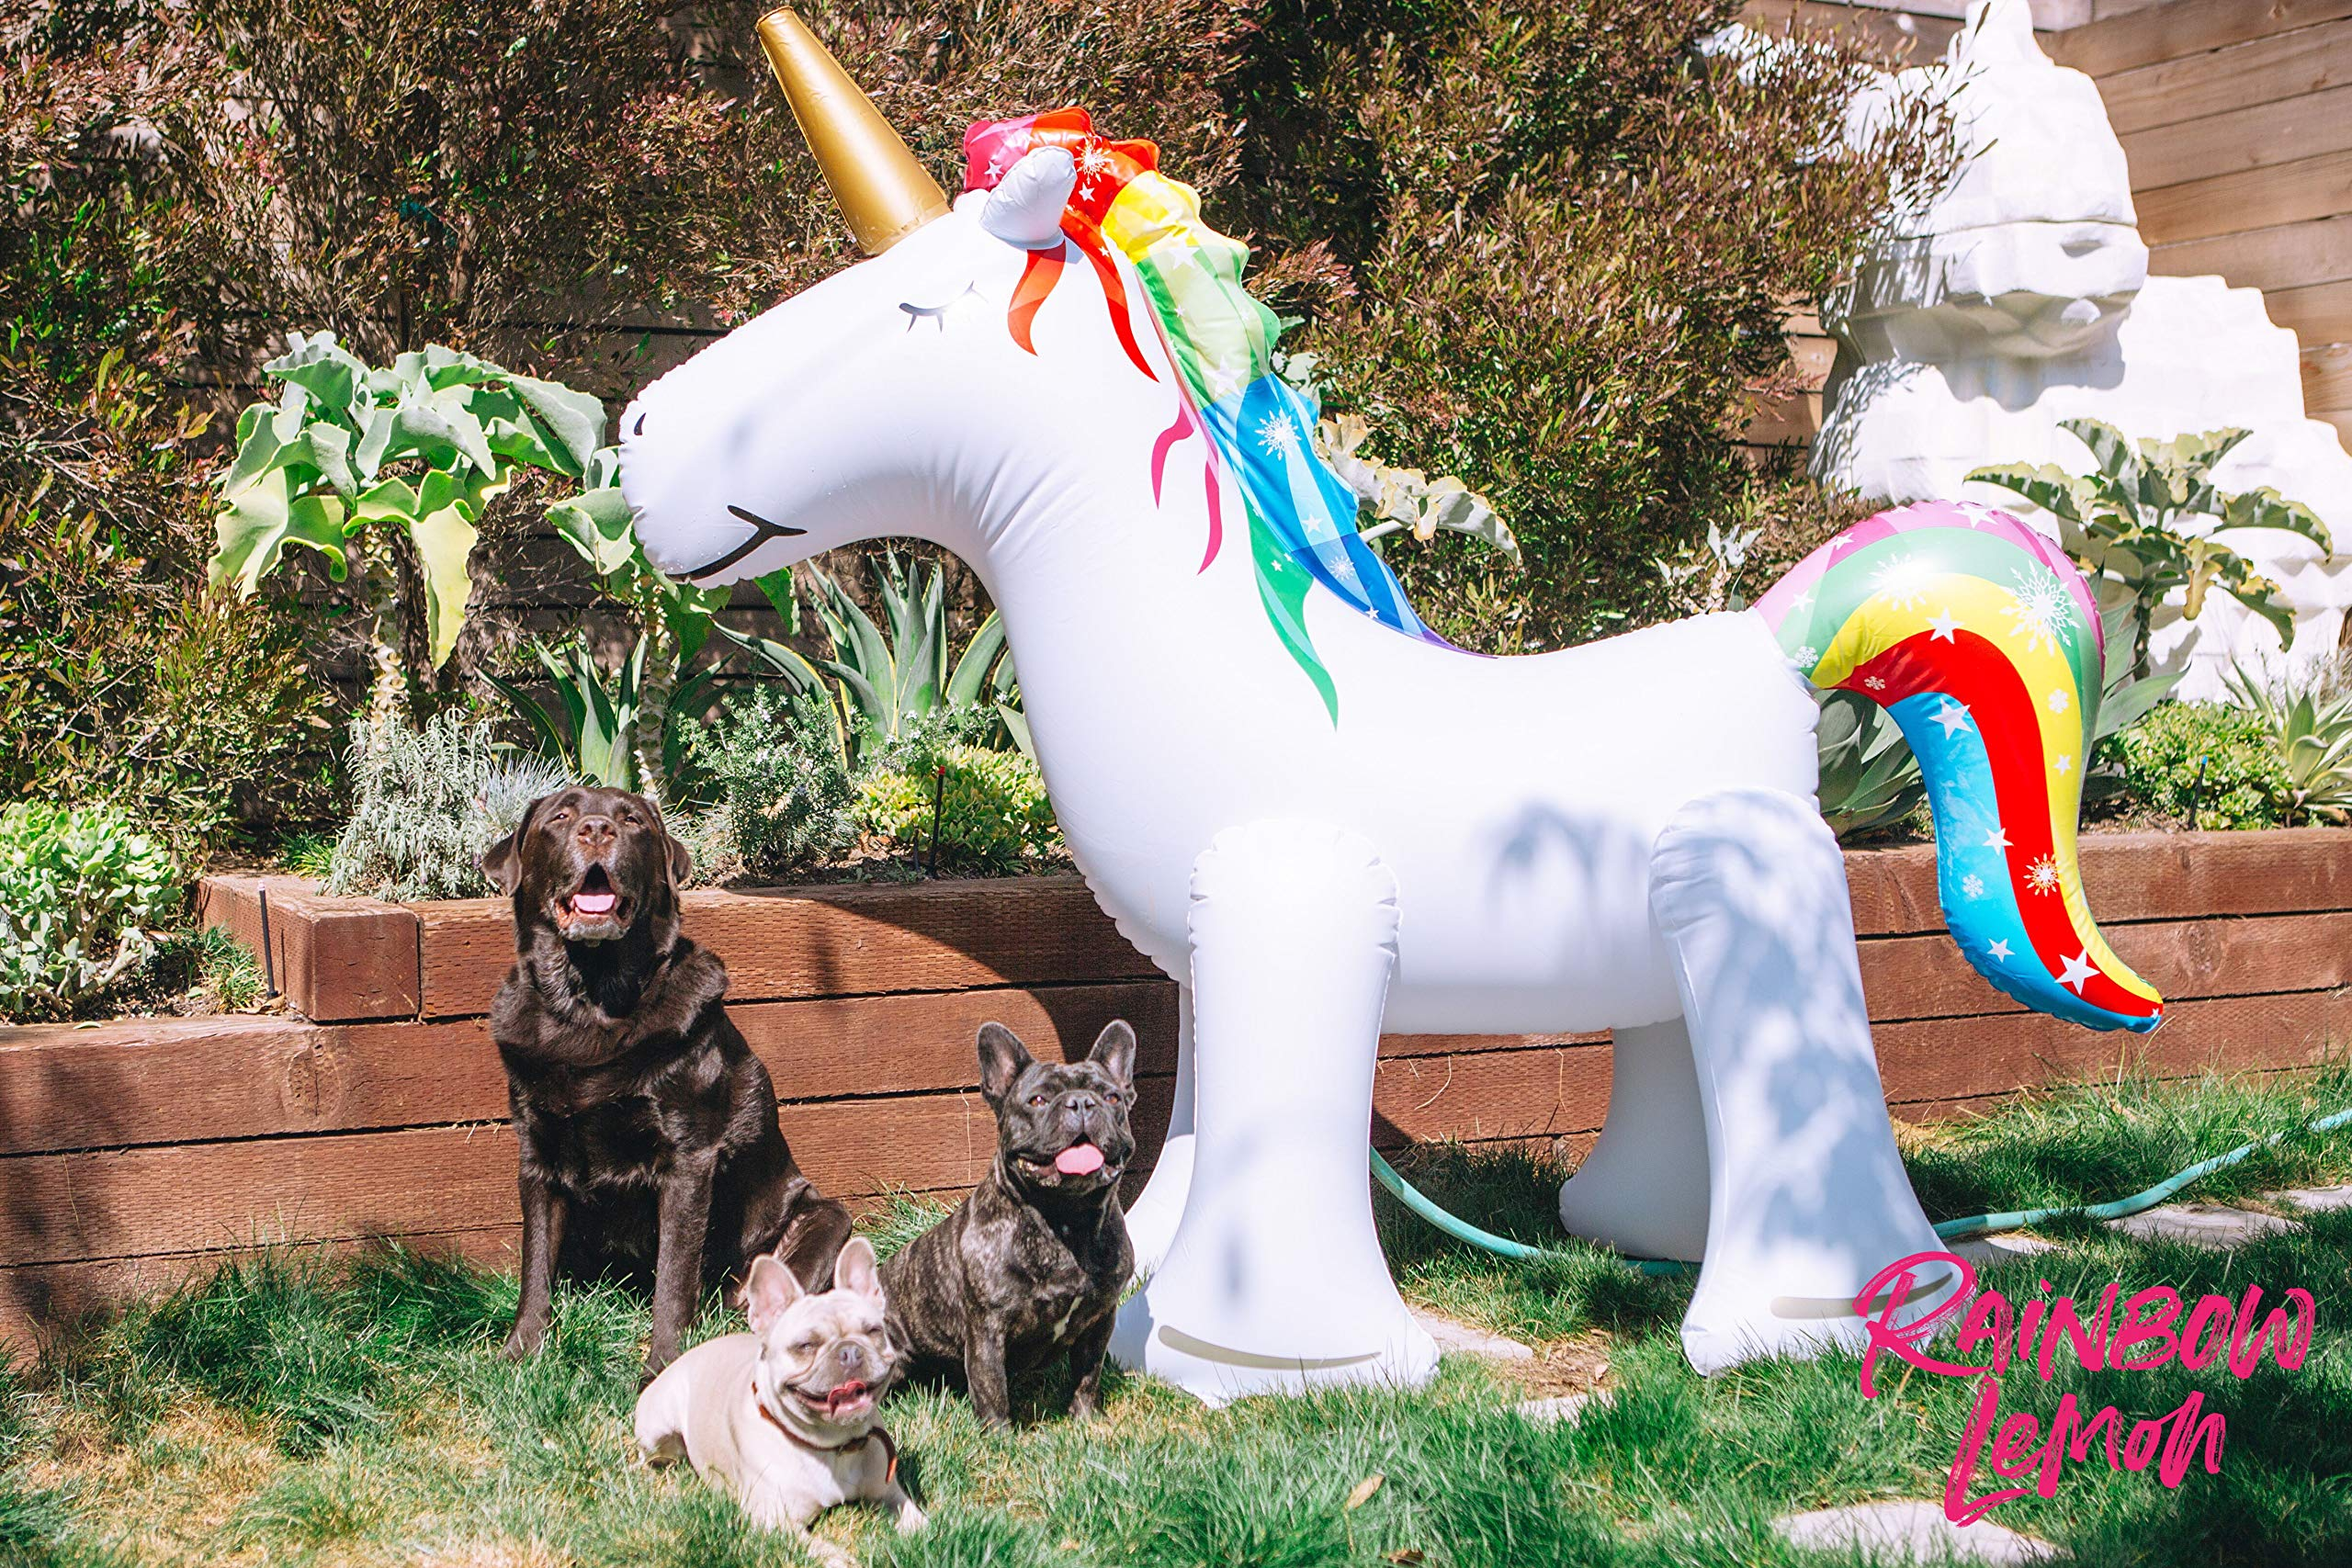 Rainbow Lemon Giant Inflatable Unicorn Sprinkler 8